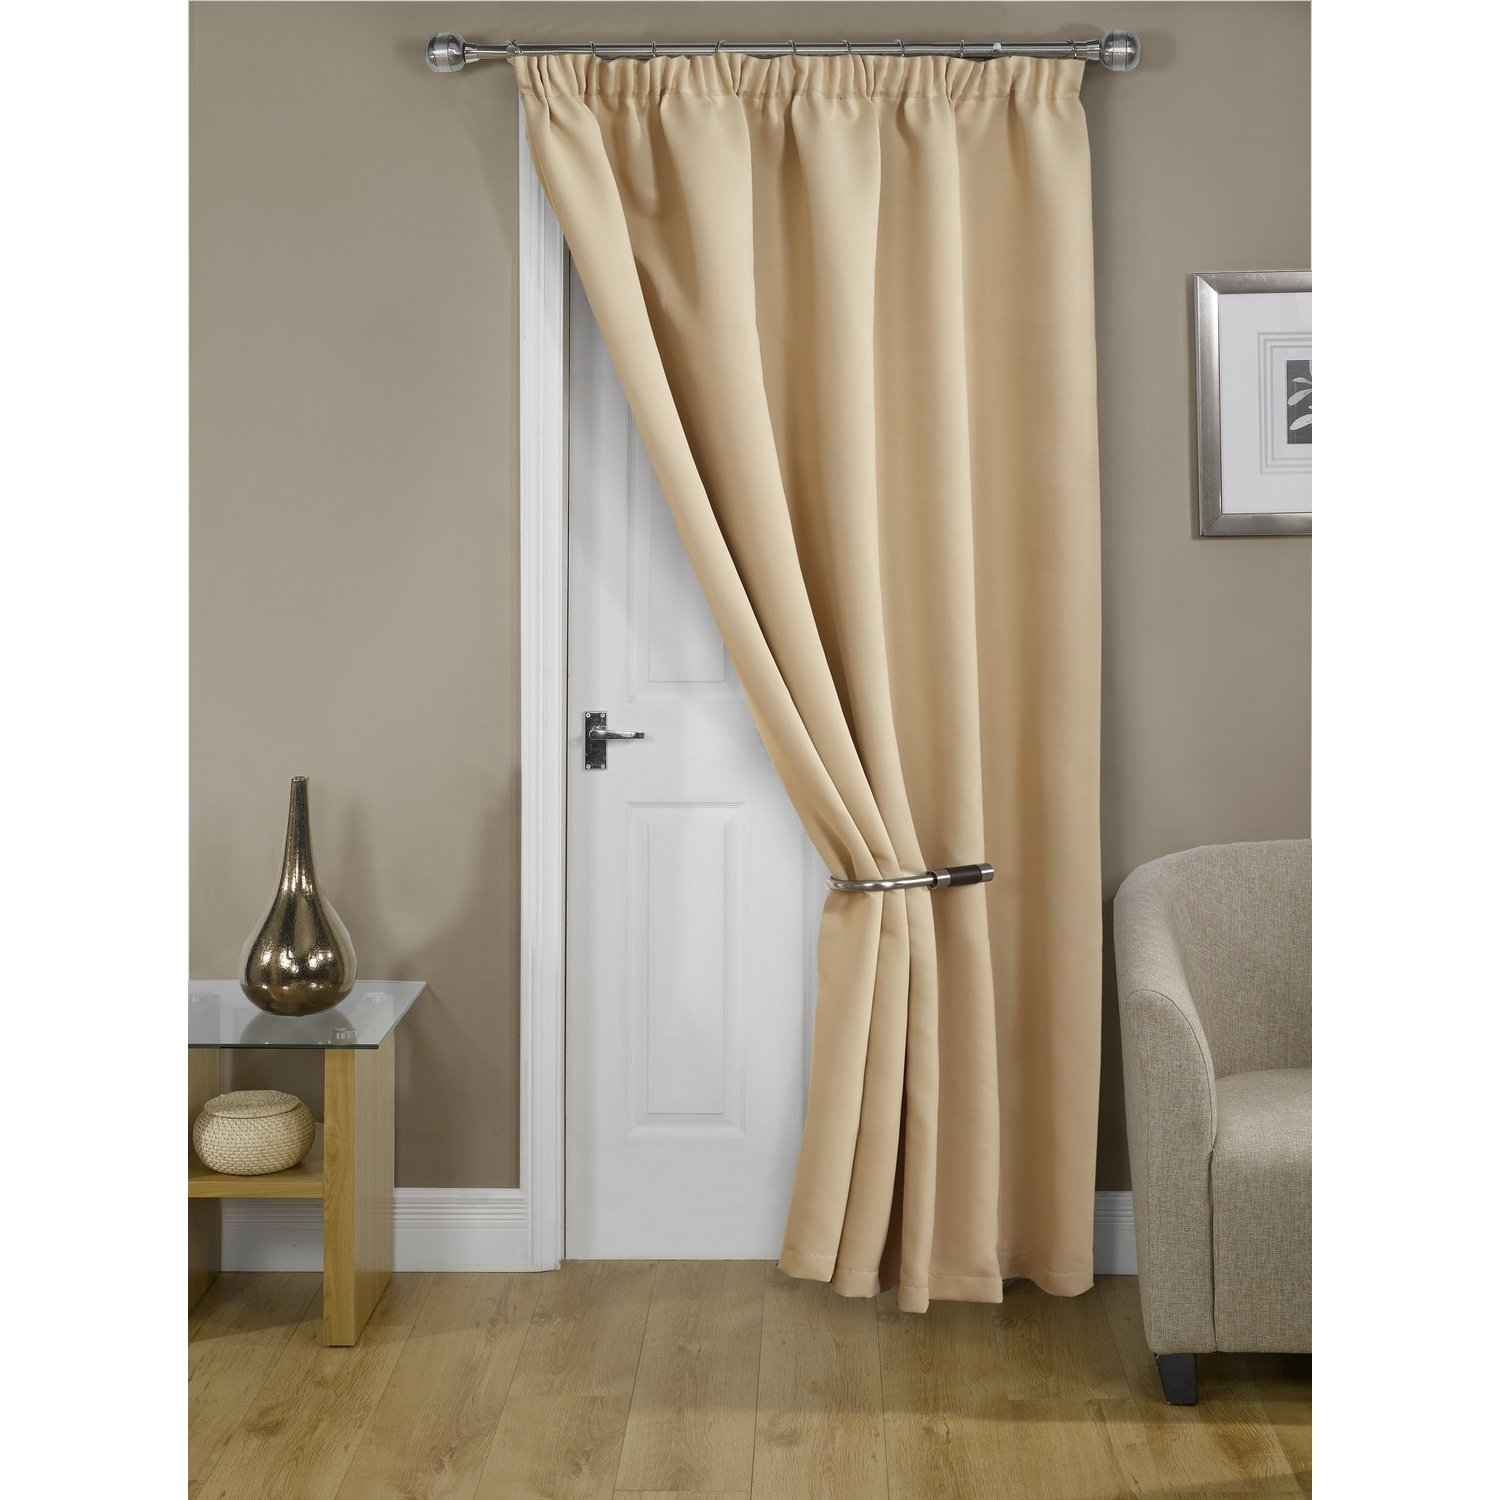 Cali Blockout Thermal Eco Tür Vorhang (167 x 213cm) (Beige